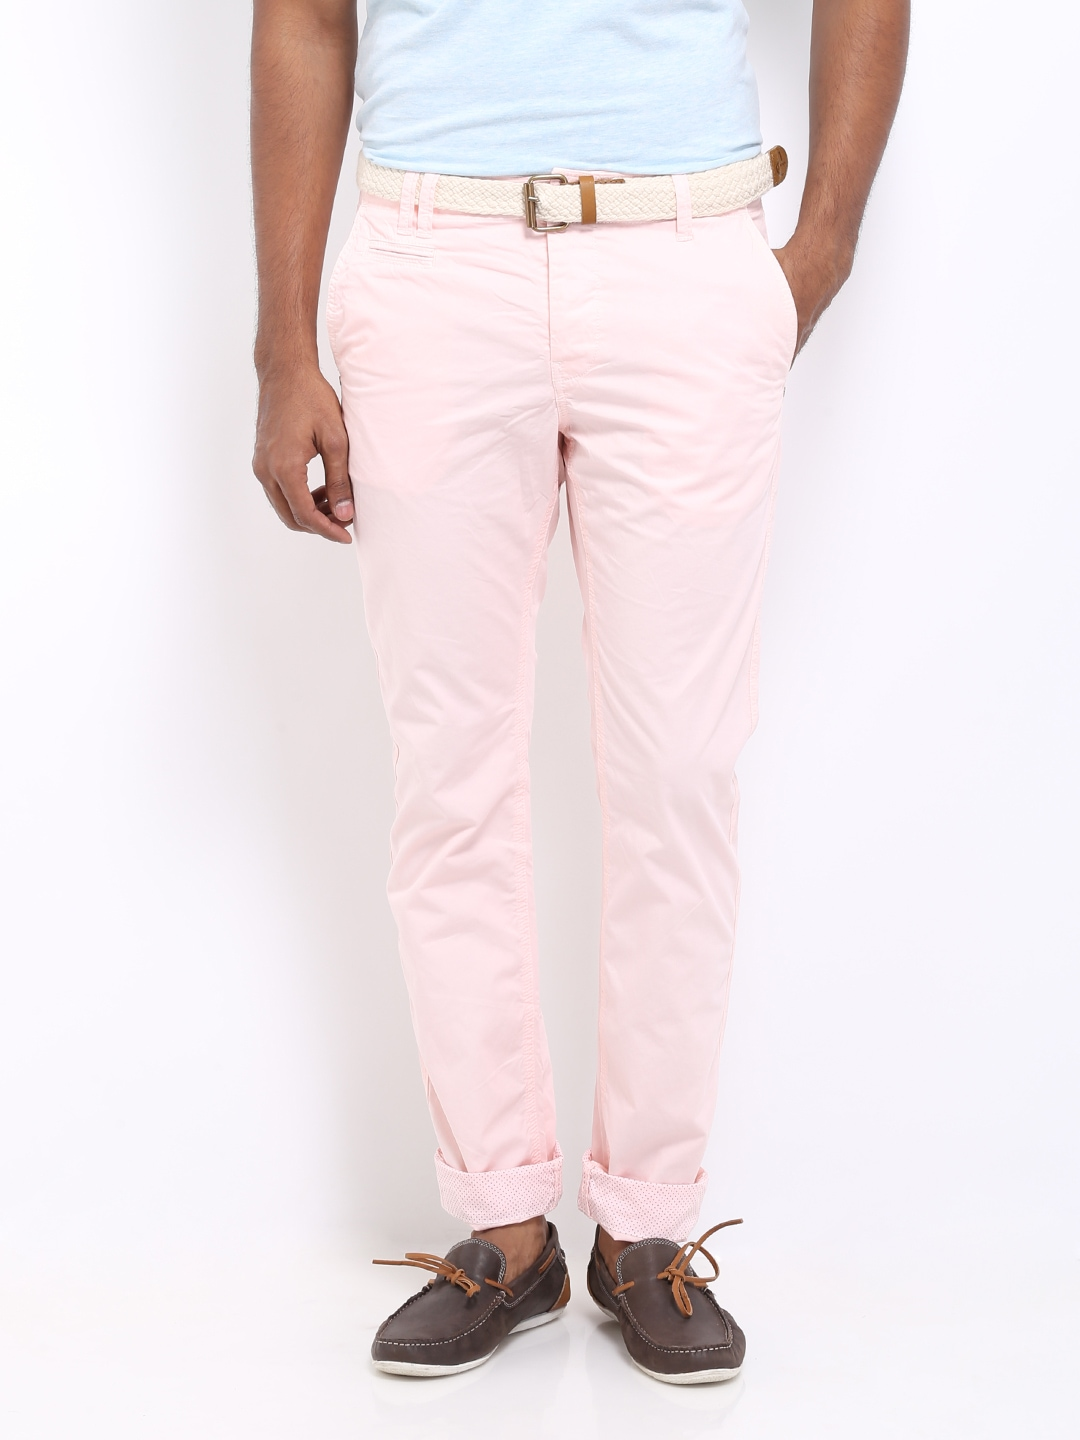 Free shipping and returns on Men's Pink Pants at allshop-eqe0tr01.cf